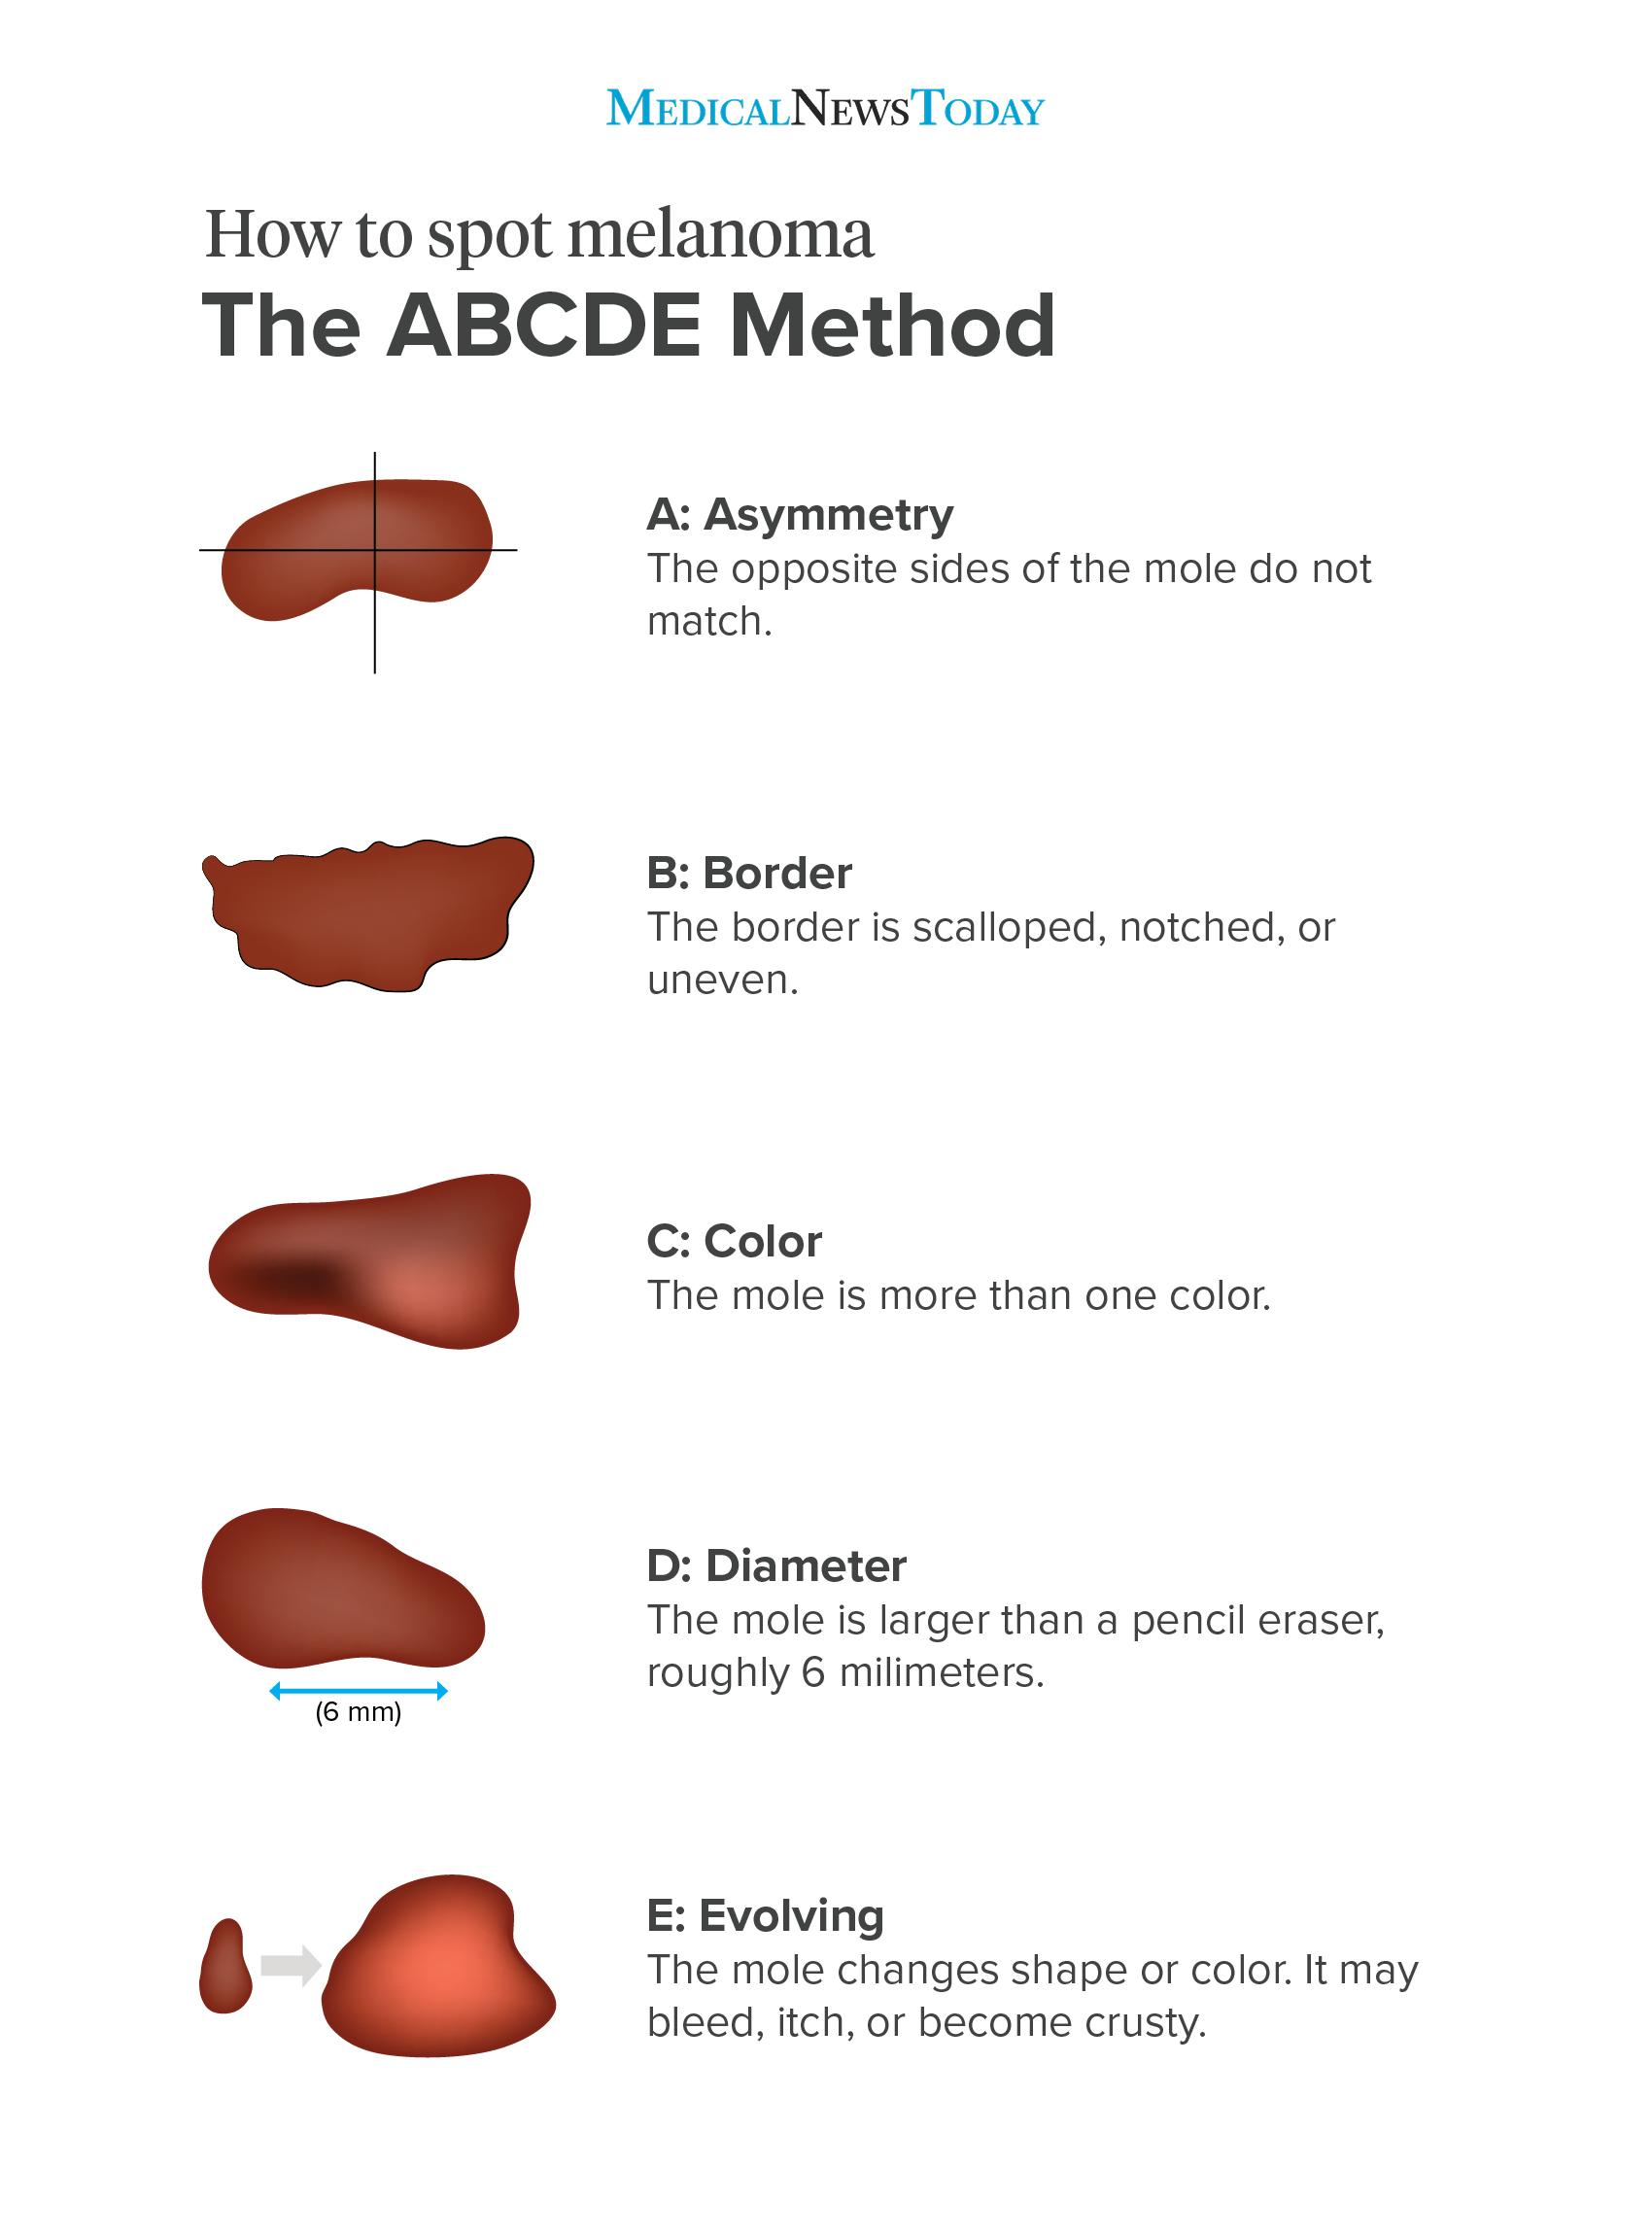 ABCDE method for spotting melanoma